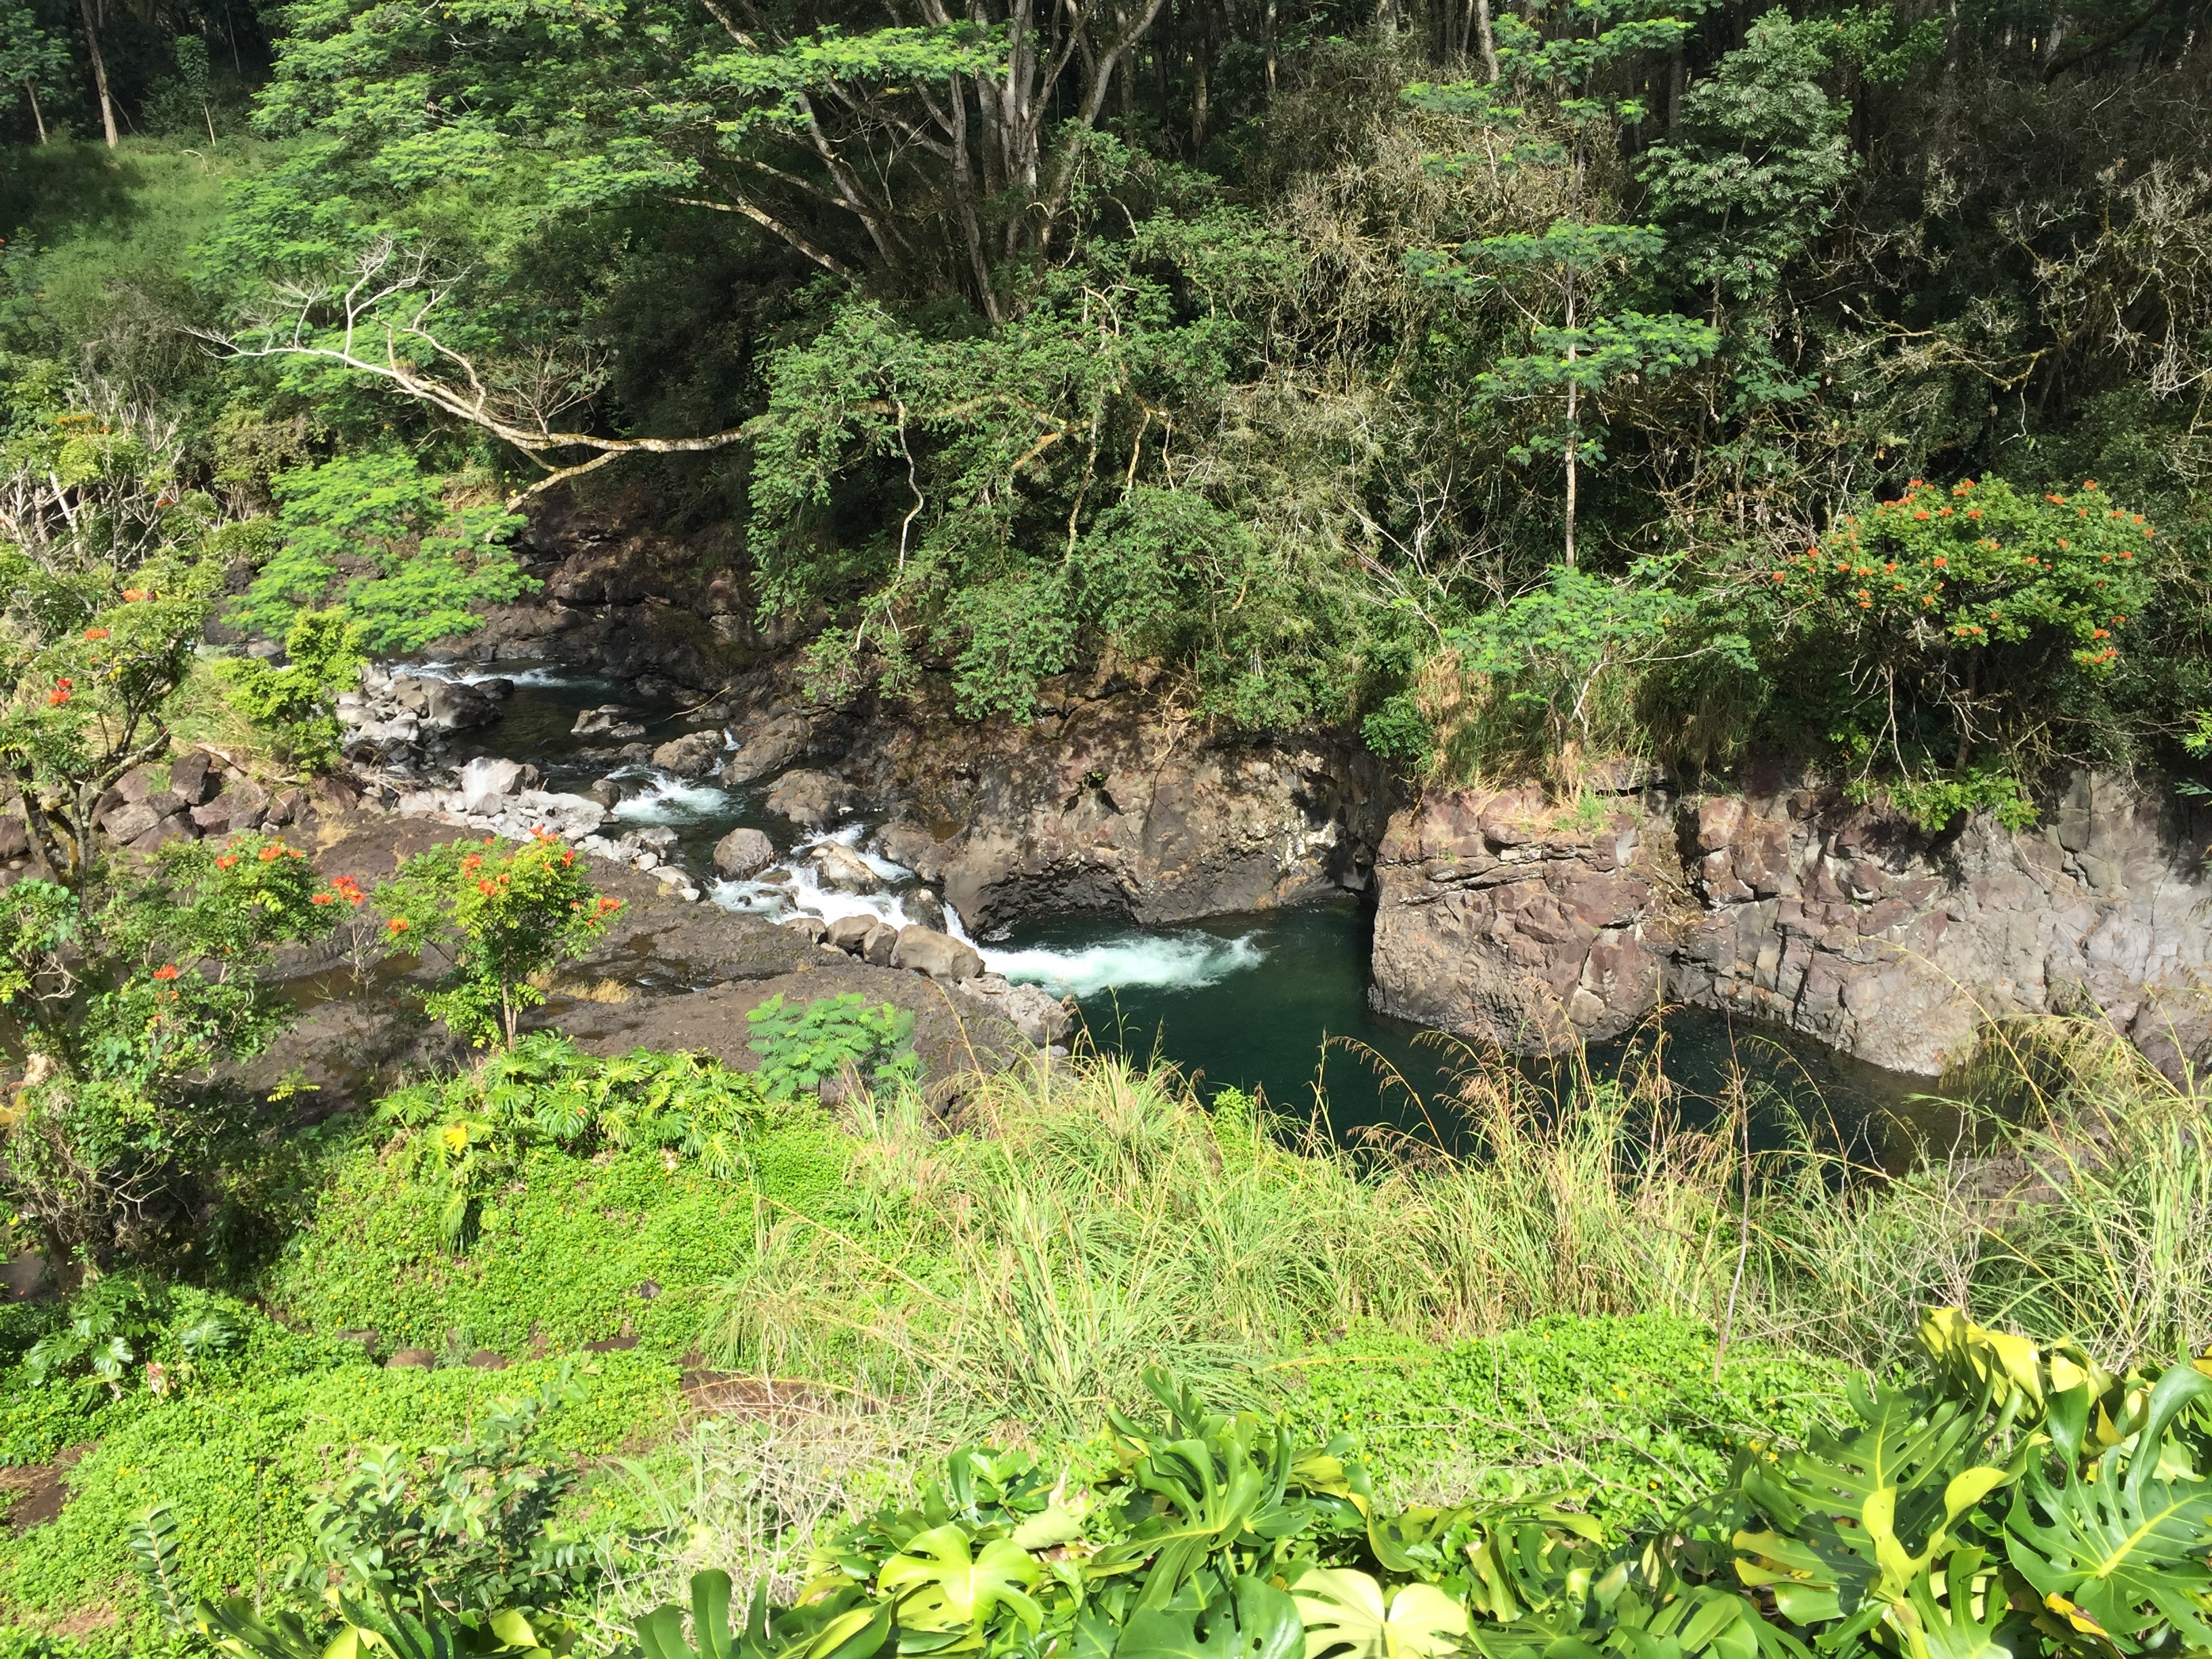 Fowler Fellow John Turner's Blog Post About Hawaii and Re-Wilding